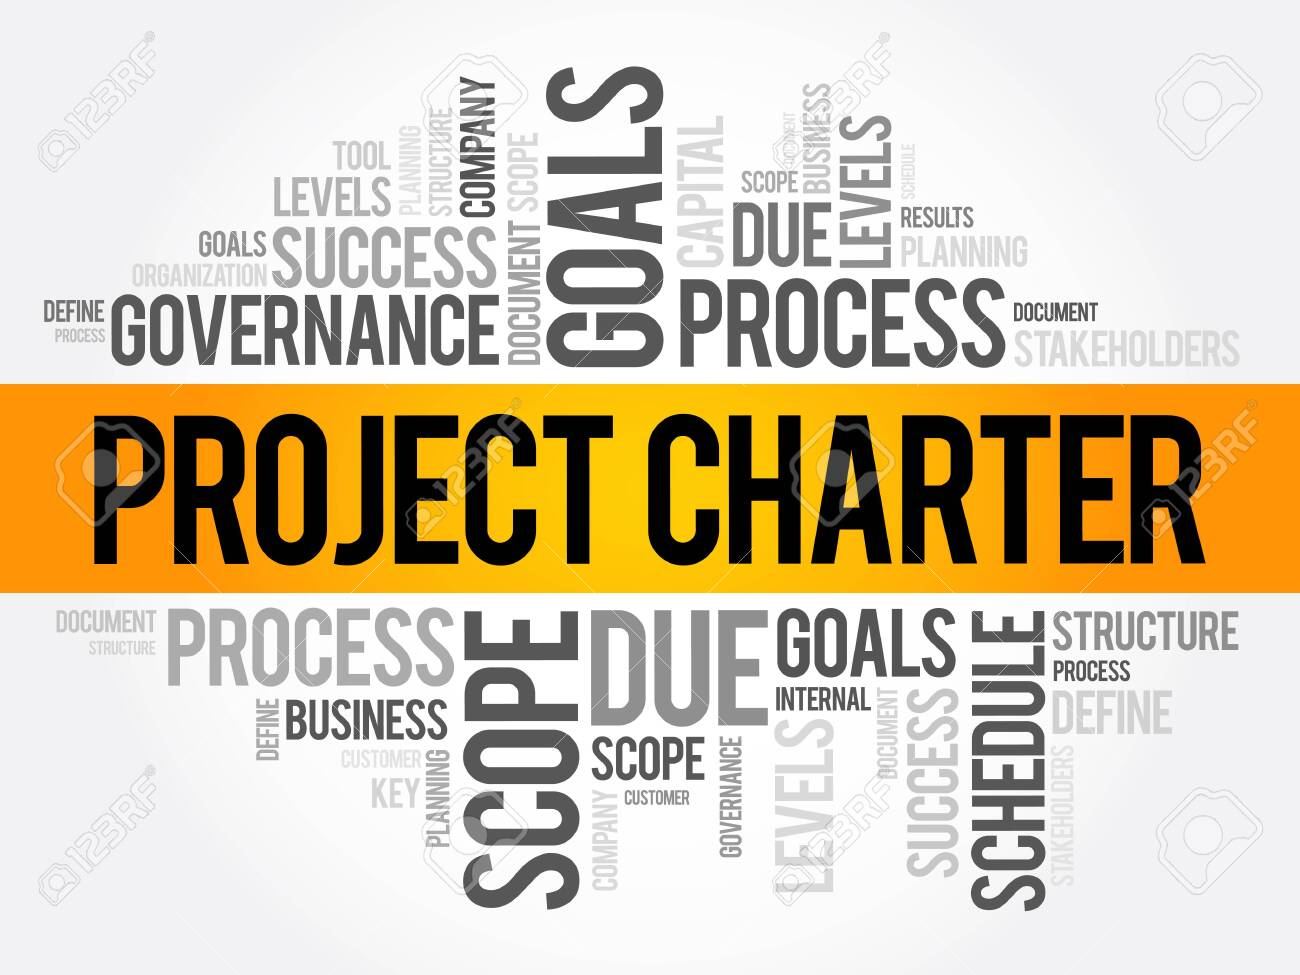 Project Charter word cloud collage, business terms such as method, process, leads concept background - 123503115